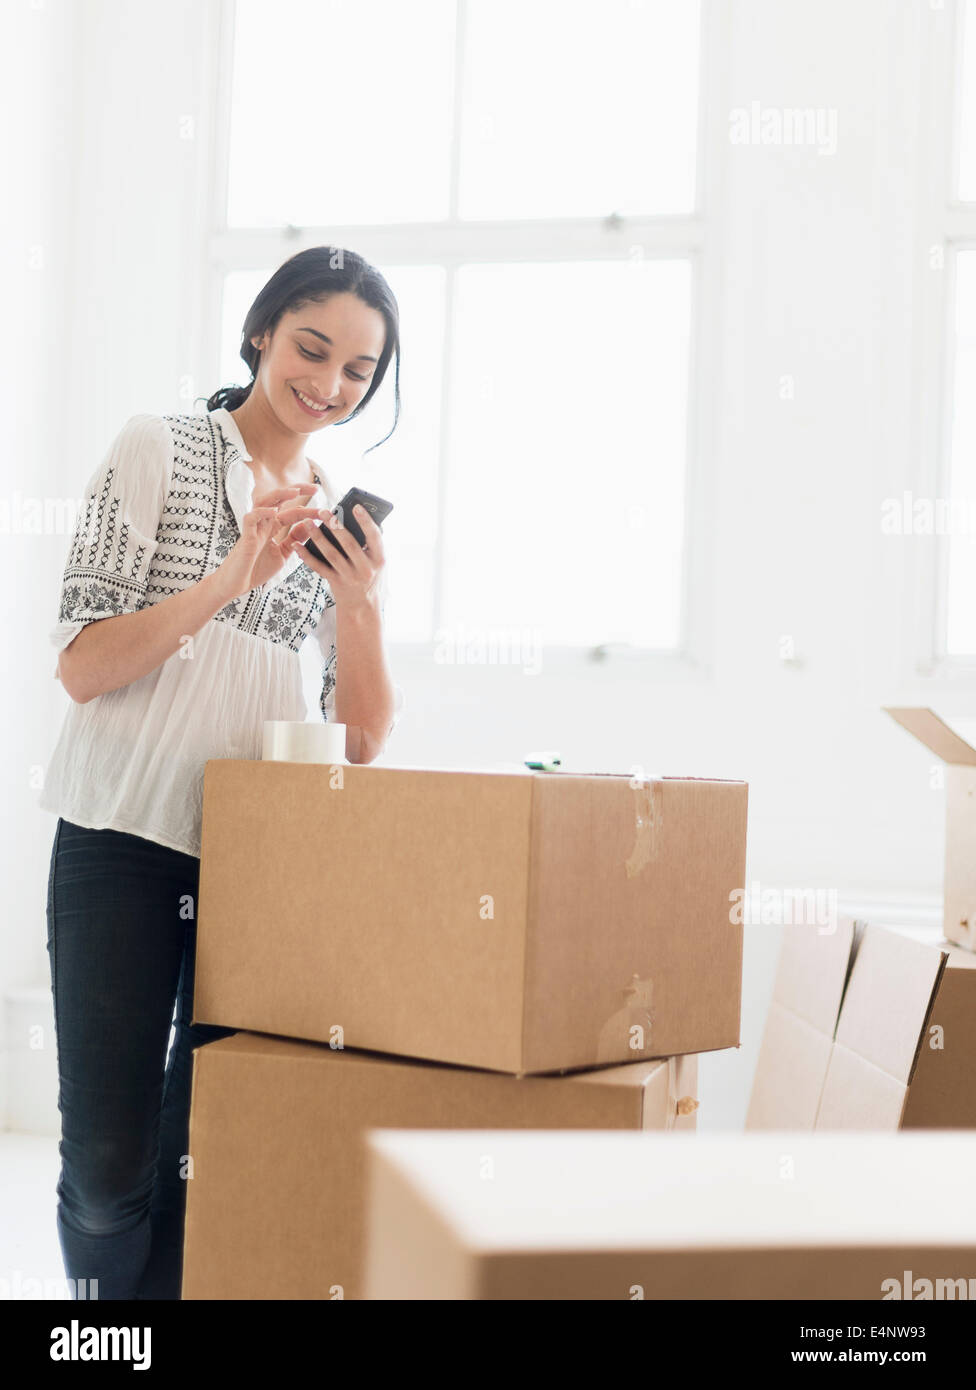 Young woman standing among boxes in new home and using mobile phone - Stock Image